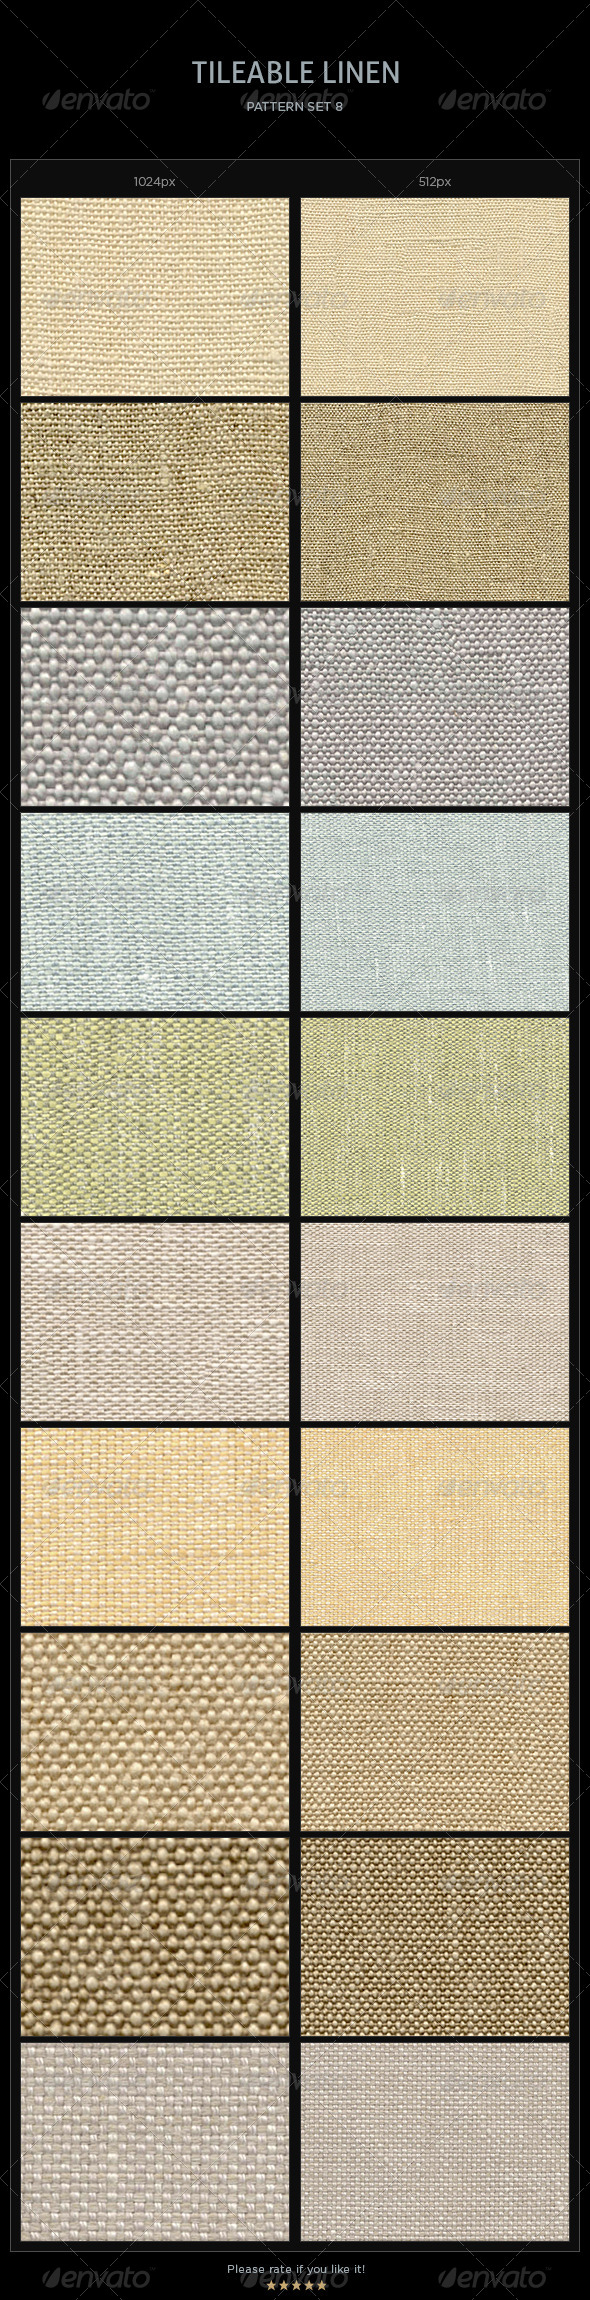 10 Tileable Linen Textures/Patterns  #GraphicRiver        This pack comes with 20 seamless linen fabric patterns.   1 .PAT file with 20 Linen patterns (1024px, 512px)  20 .JPG files containing the tilables patterns (1024px, 512px)  Instructions included      Created: 17March13 Add-onFilesIncluded: JPGImage #PhotoshopPAT MinimumAdobeCSVersion: CS Tags: background #canvas #cloth #fabric #linen #pattern #seamless #textile #texture #tileable